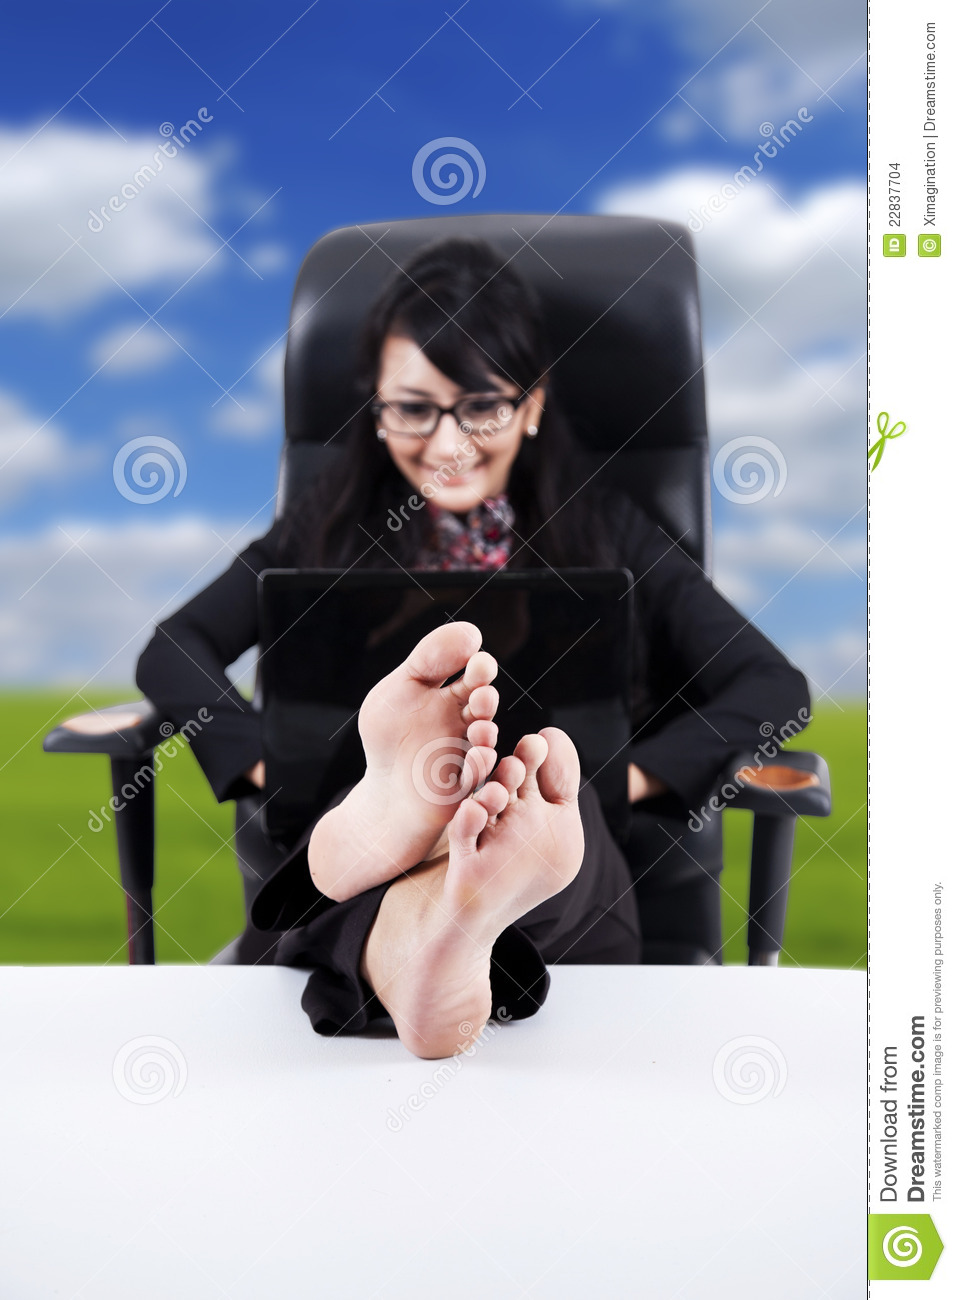 business-woman-feet-up-table-22837704.jpg